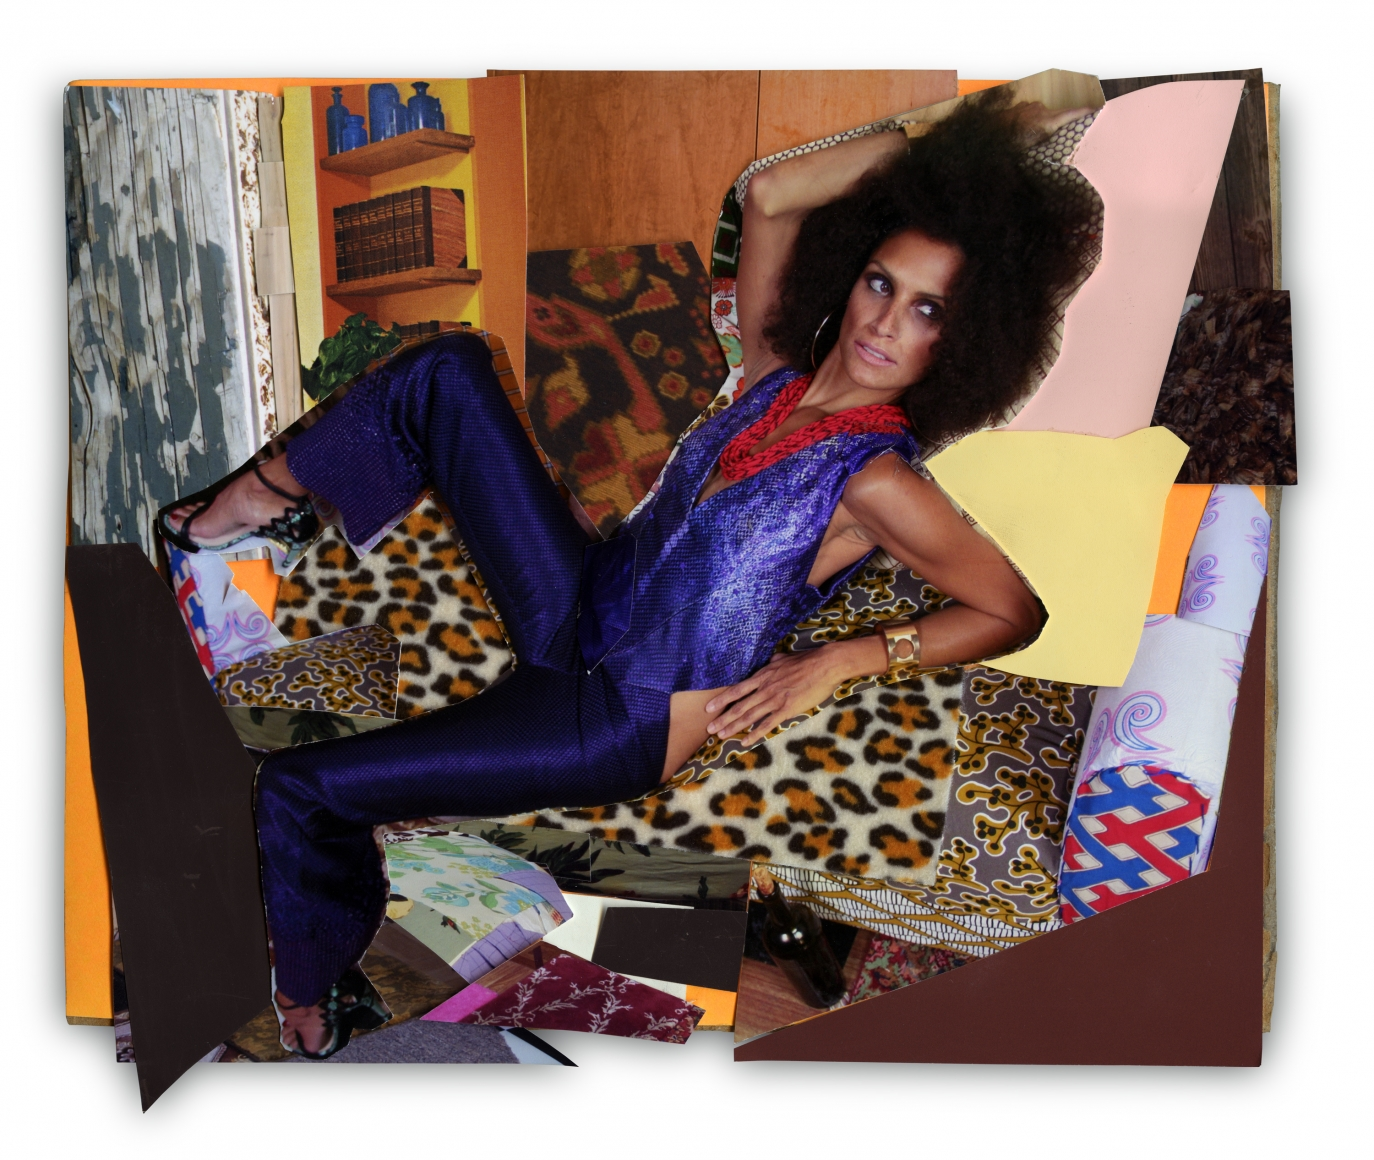 MICKALENE THOMAS, Racquel Leaned Back, 2013